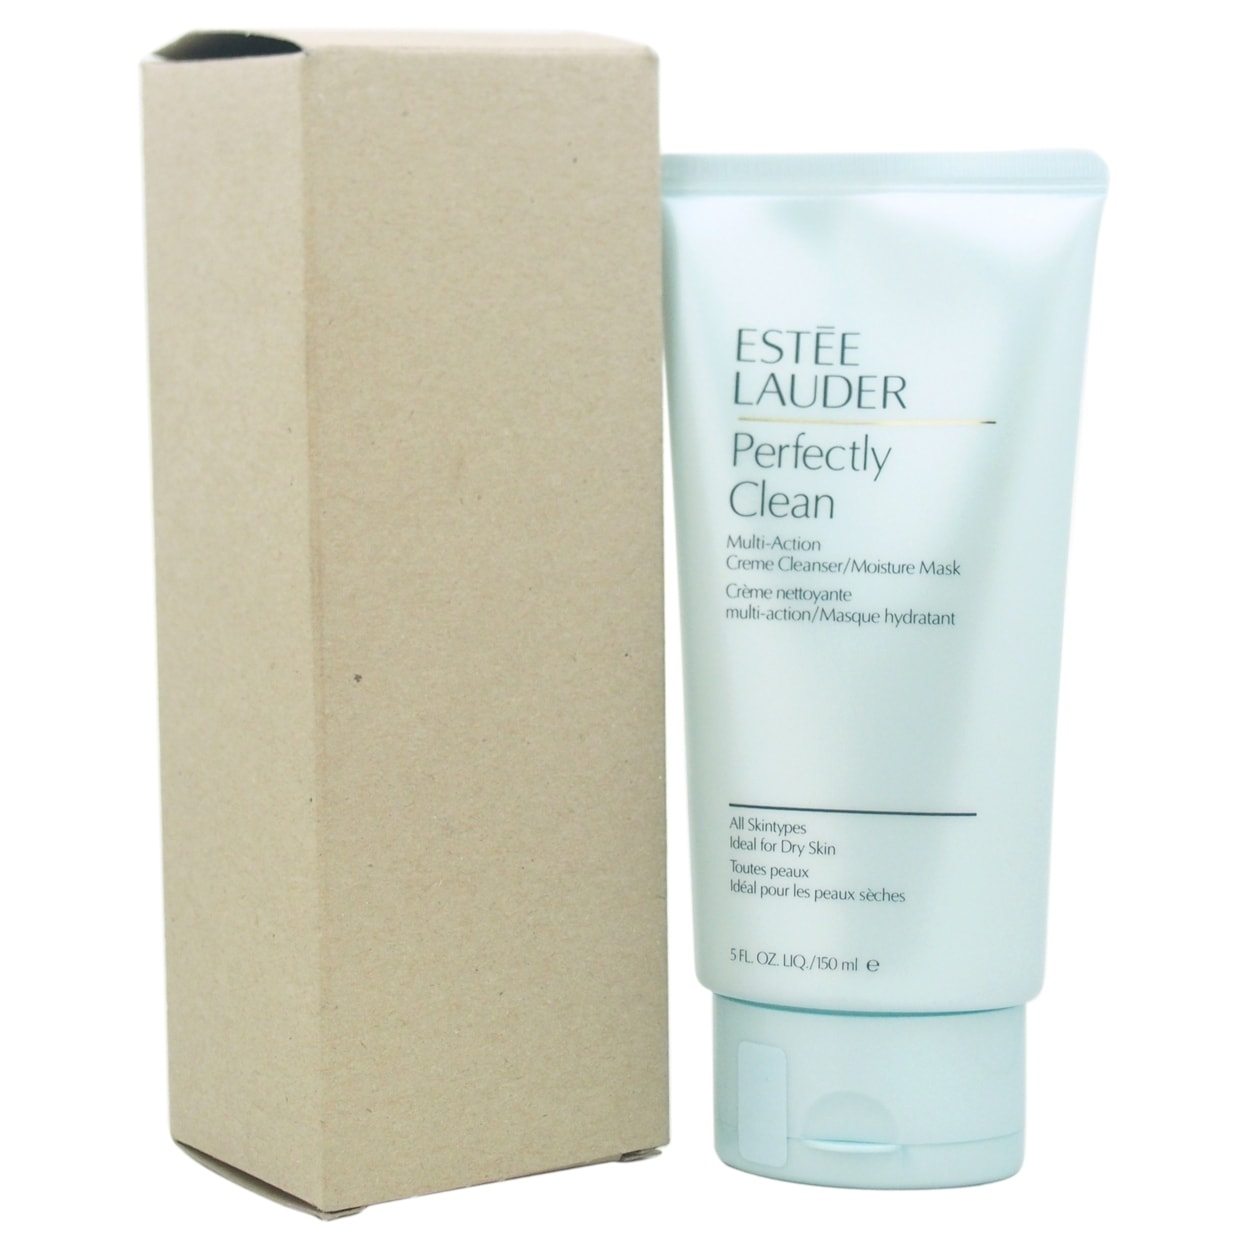 Perfectly Clean Multi-Action Creme Cleanser/Moisture Mask - All Skin Types By Estee Lauder For Unisex - 5 Oz Cleanser